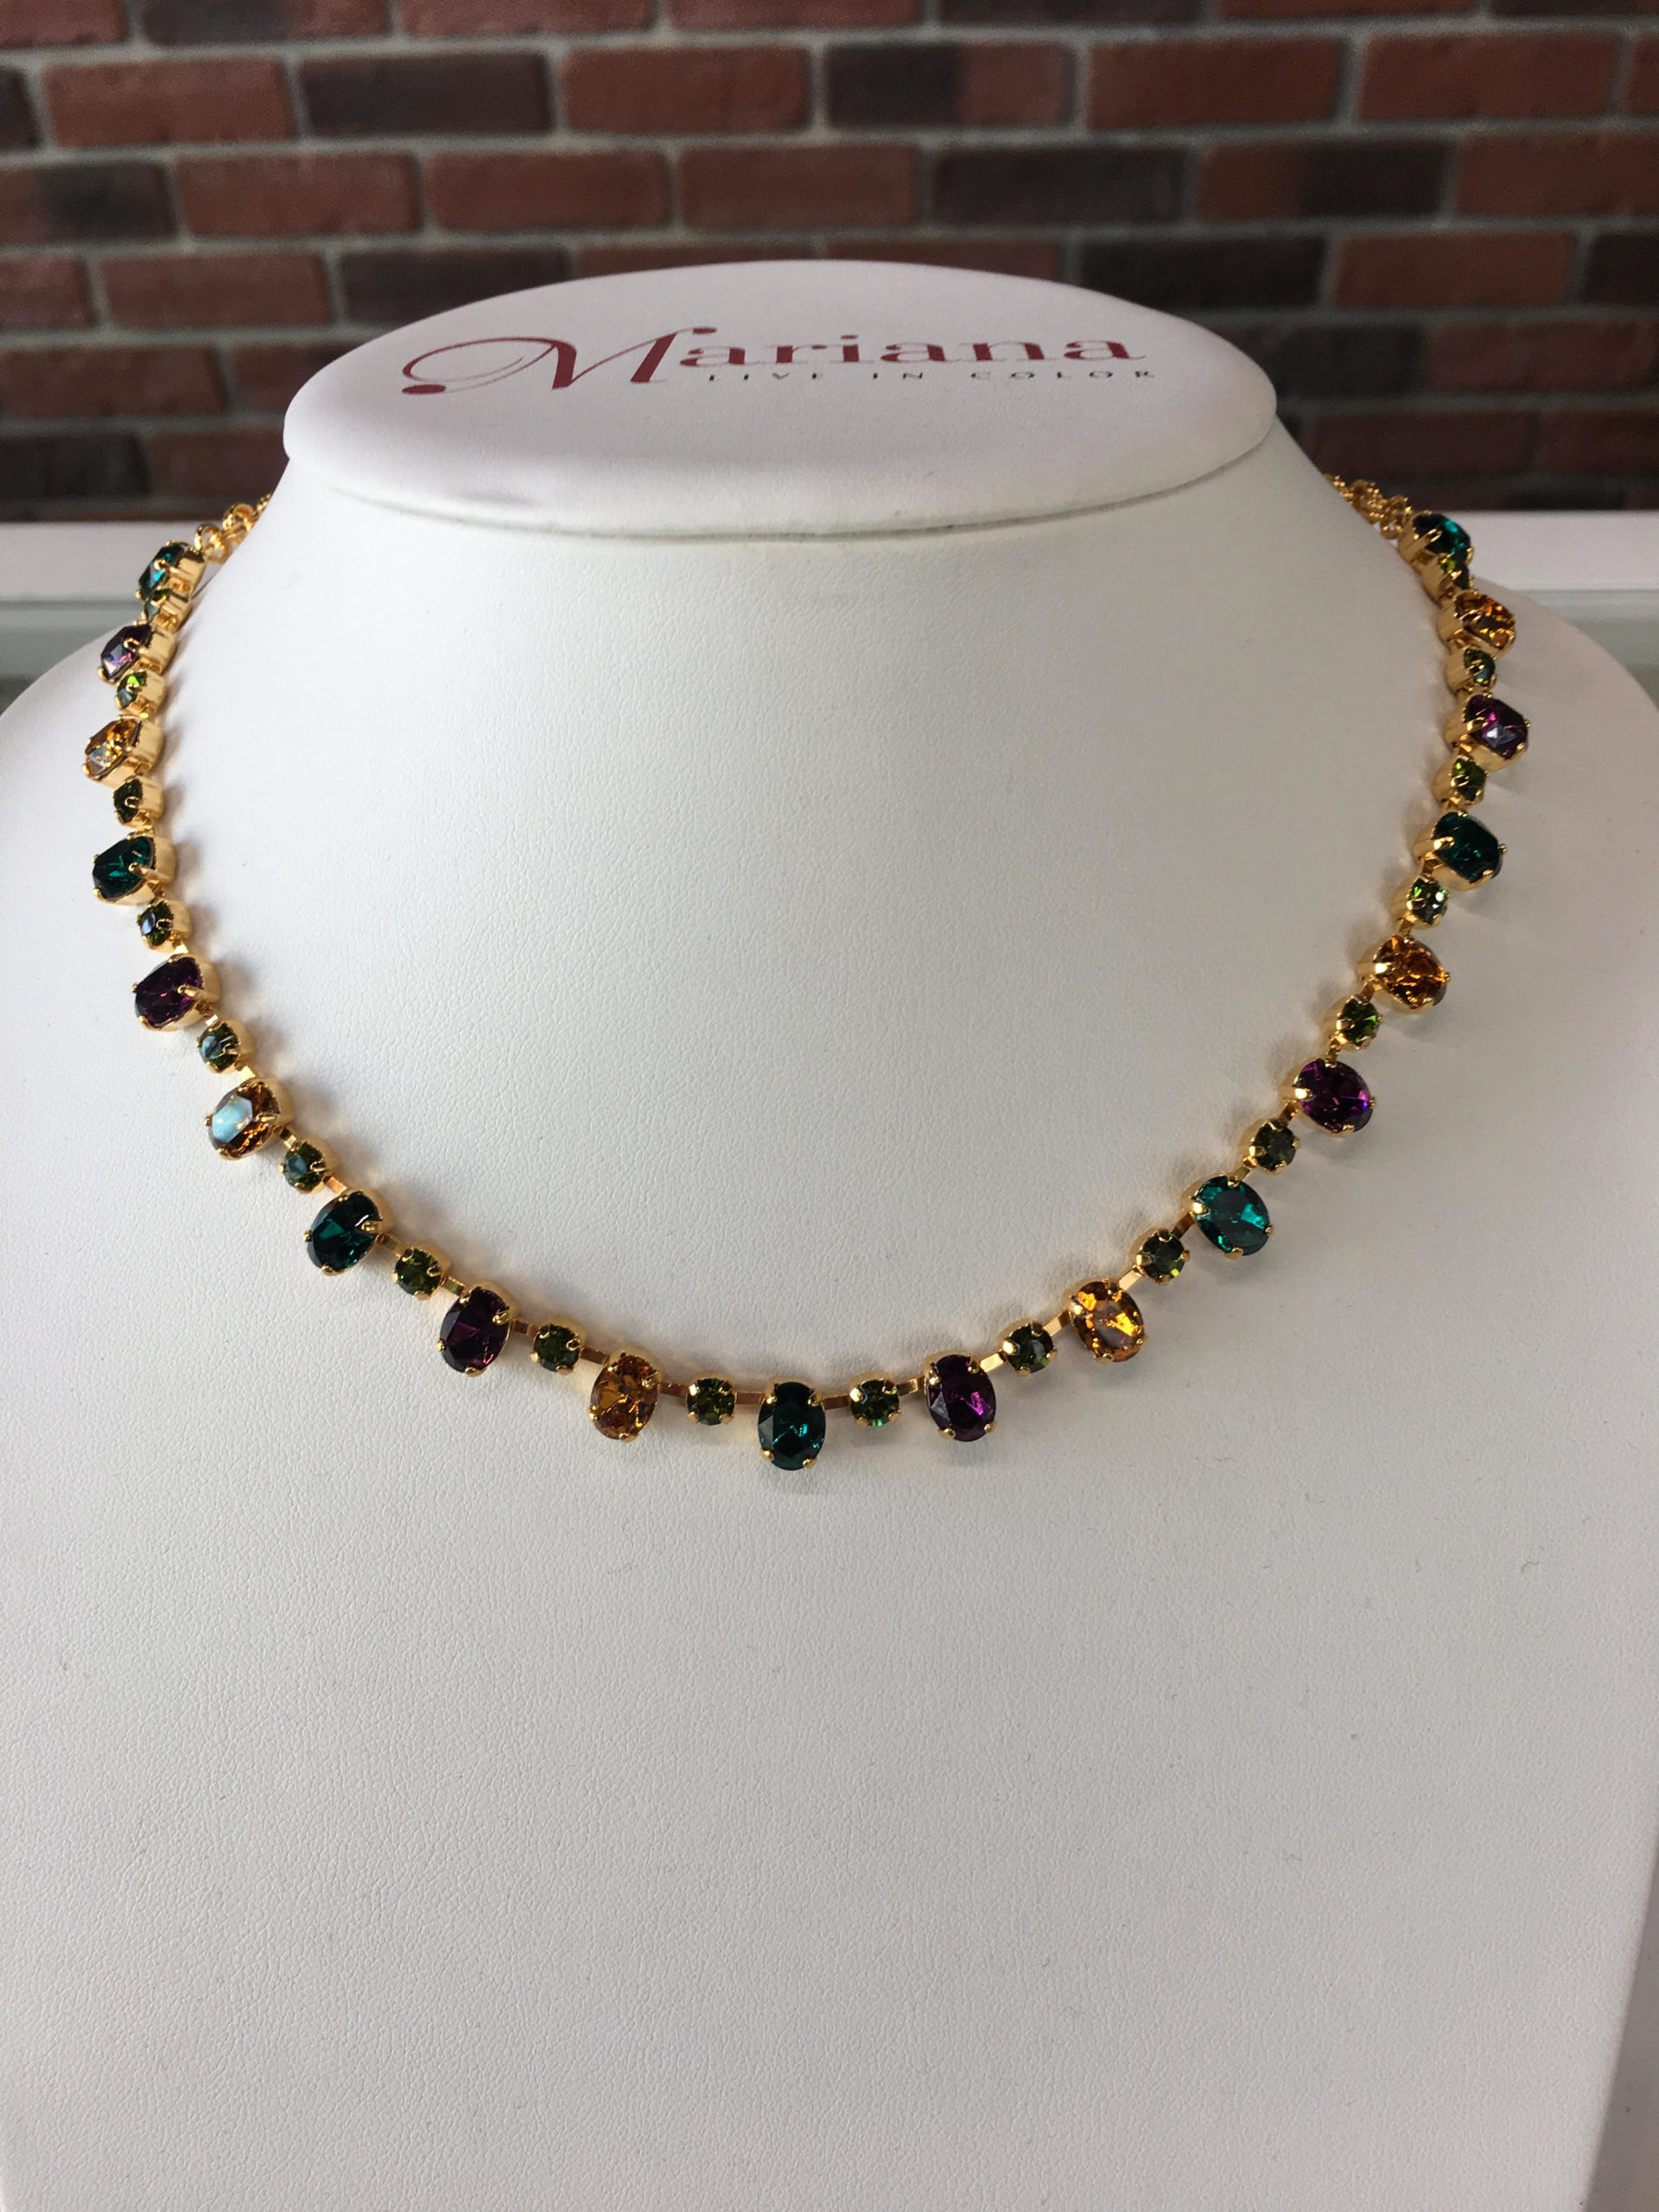 Mariana Swarovski crystal necklace in yellow gold plate